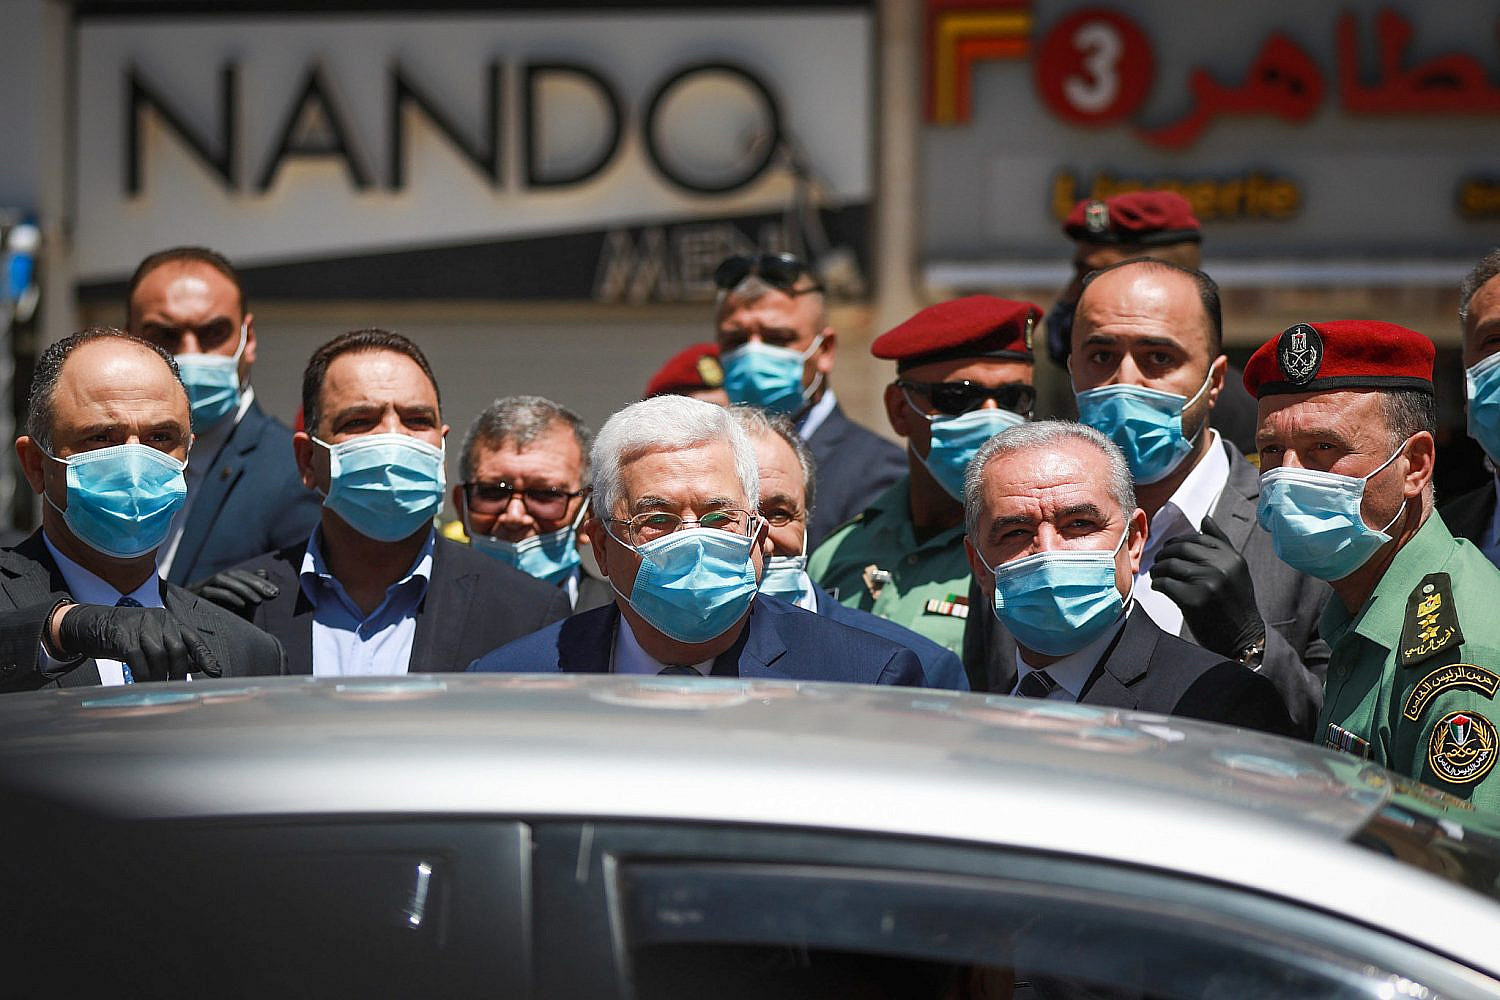 Palestinian President Mahmoud Abbas during a tour in the West Bank city of Ramallah, May 15, 2020. (Flash90)